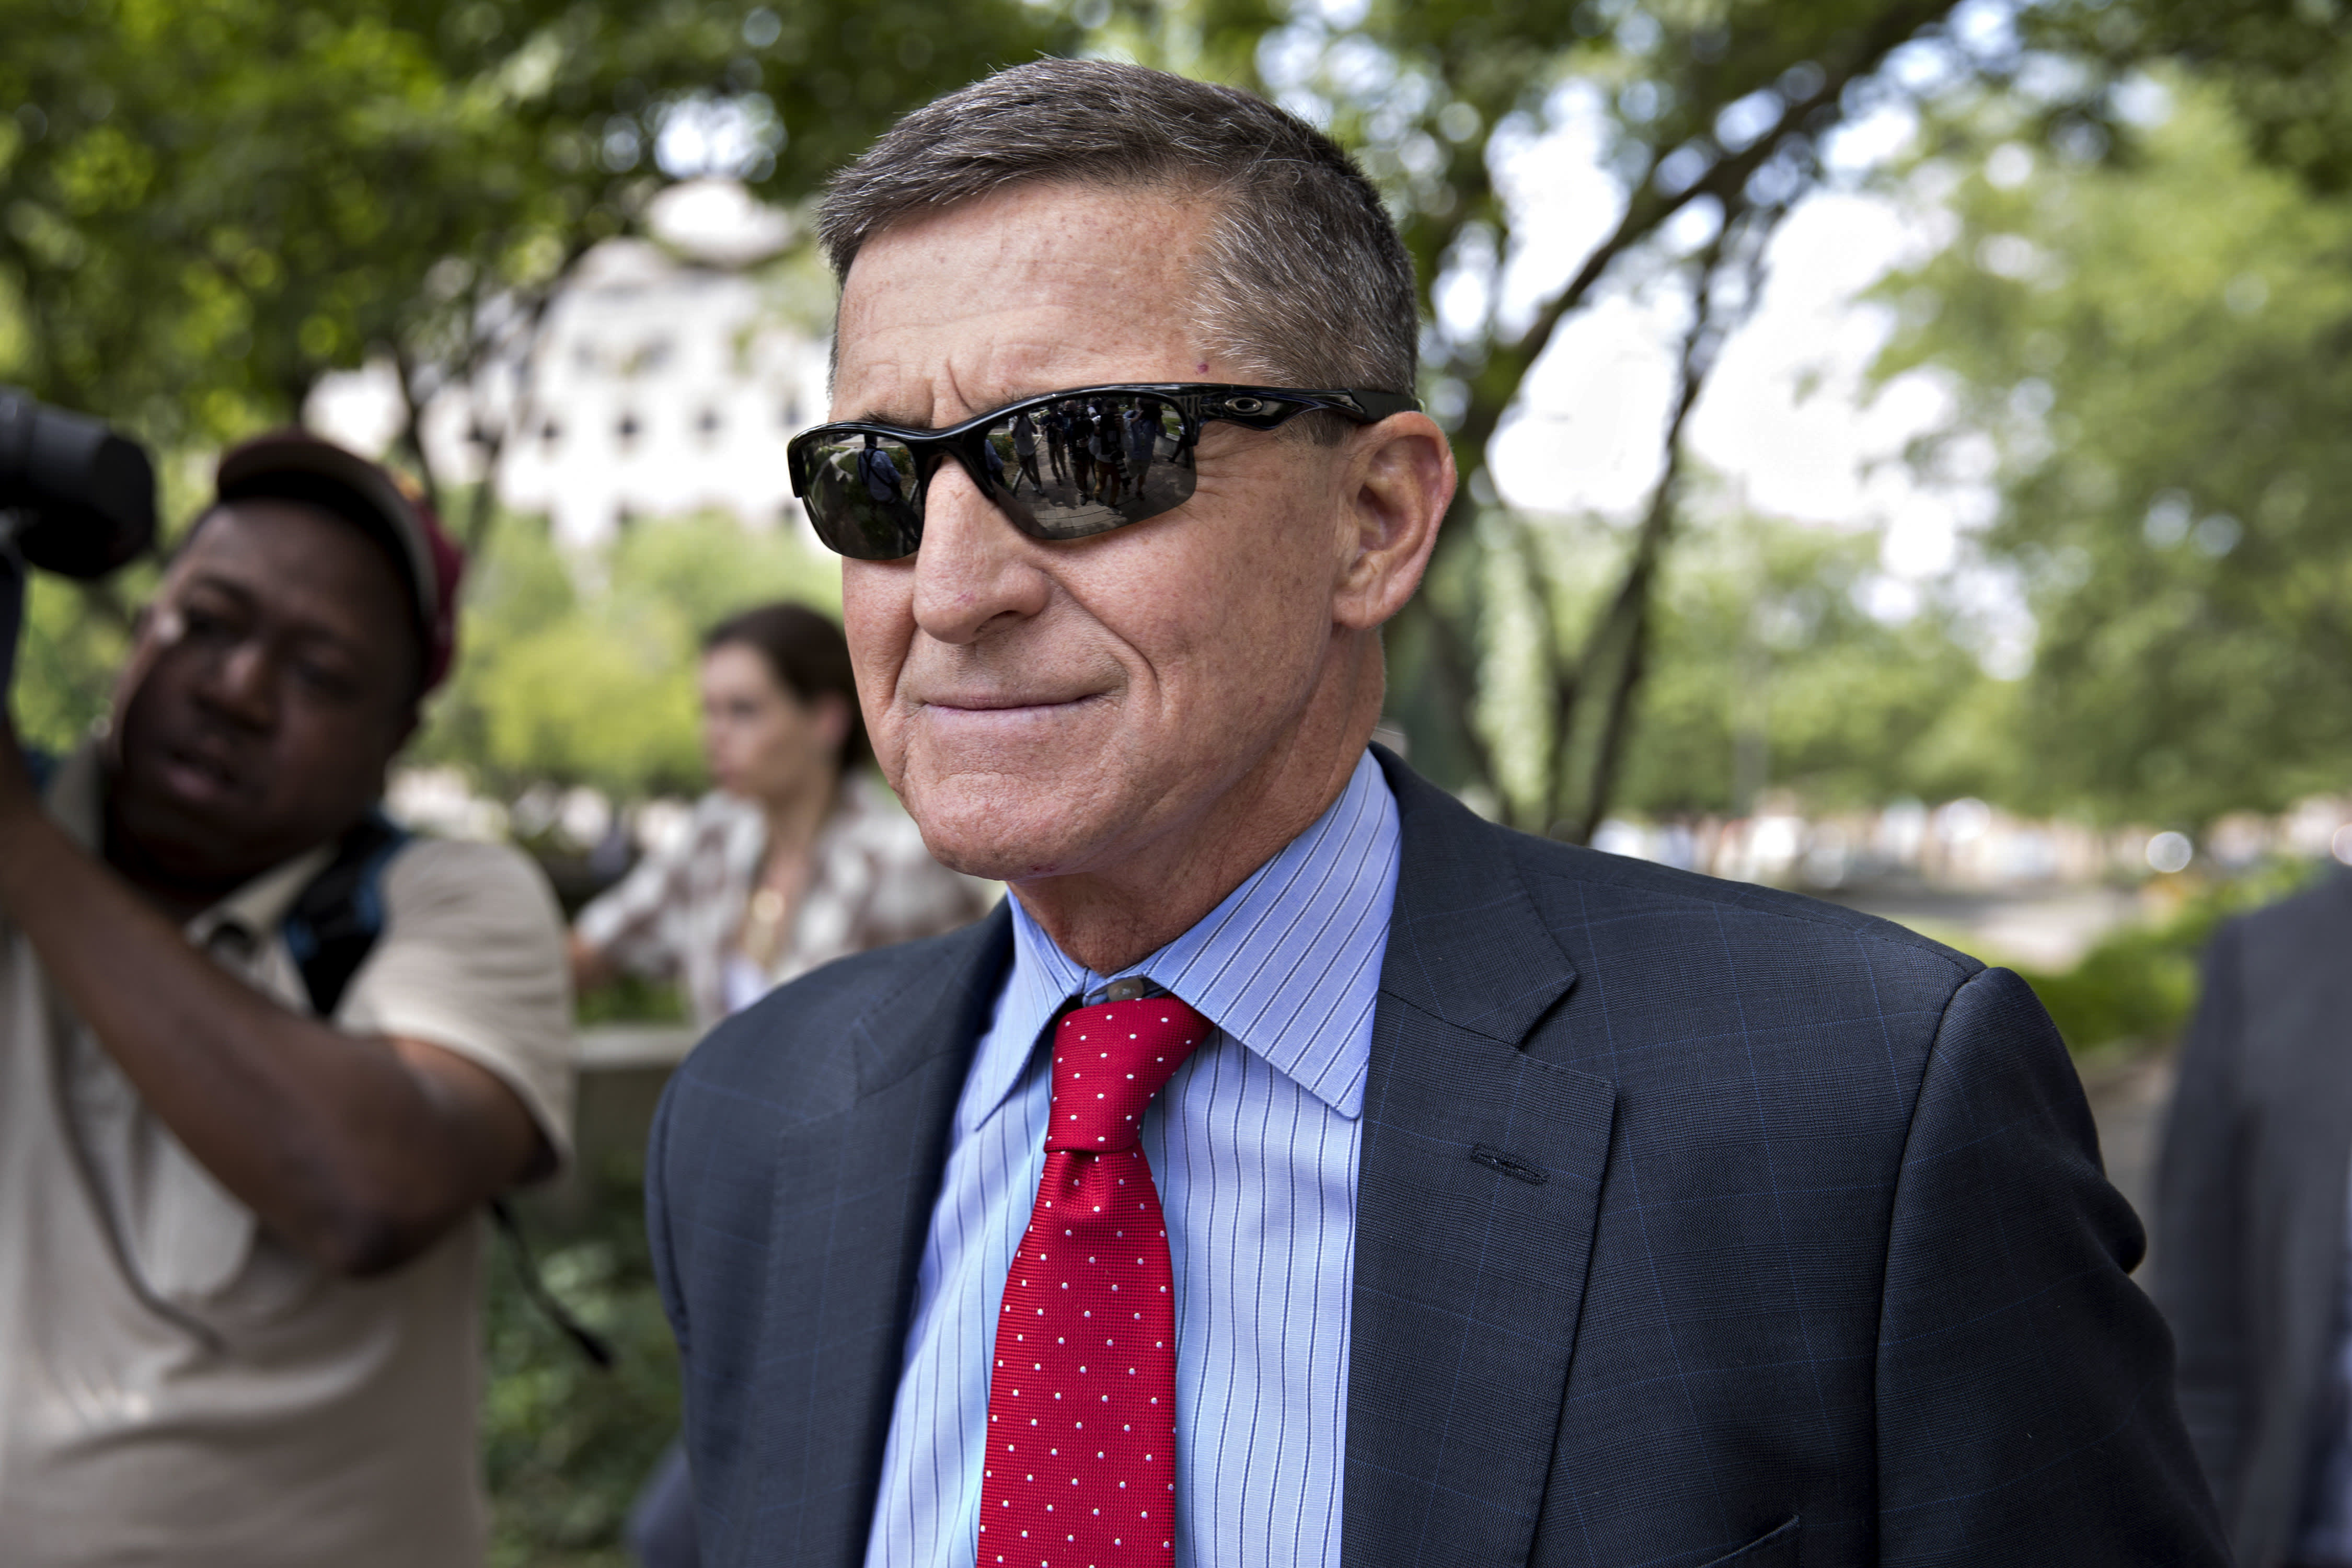 U.S. appeals court orders judge to dismiss case against former Trump national security advisor Michael Flynn